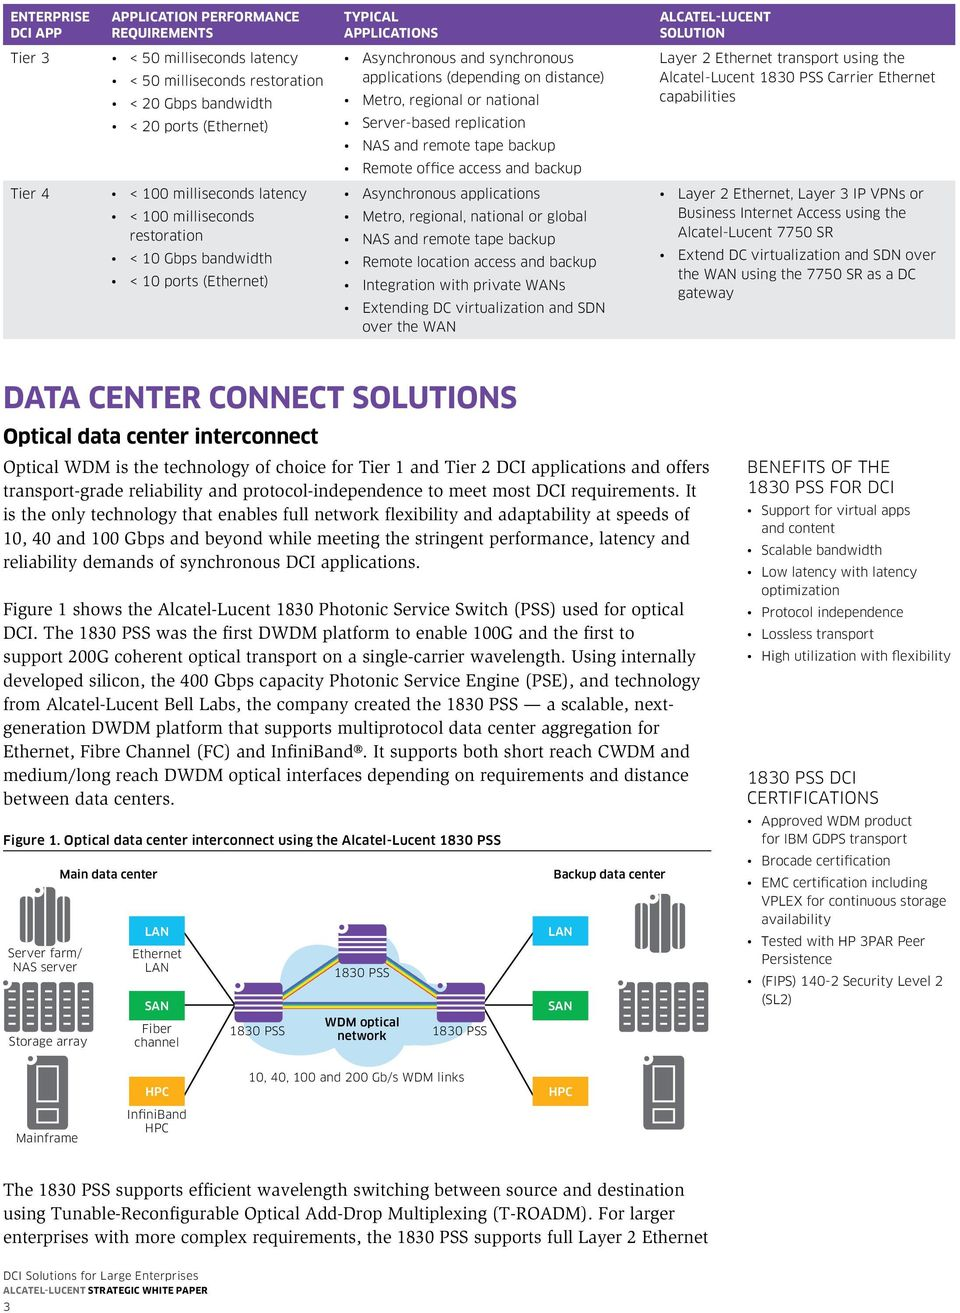 Alcatel-Lucent Carrier Ethernet capabilities Remote office access and backup Tier 4 < 100 milliseconds latency < 100 milliseconds restoration < 10 Gbps bandwidth < 10 ports (Ethernet) Asynchronous